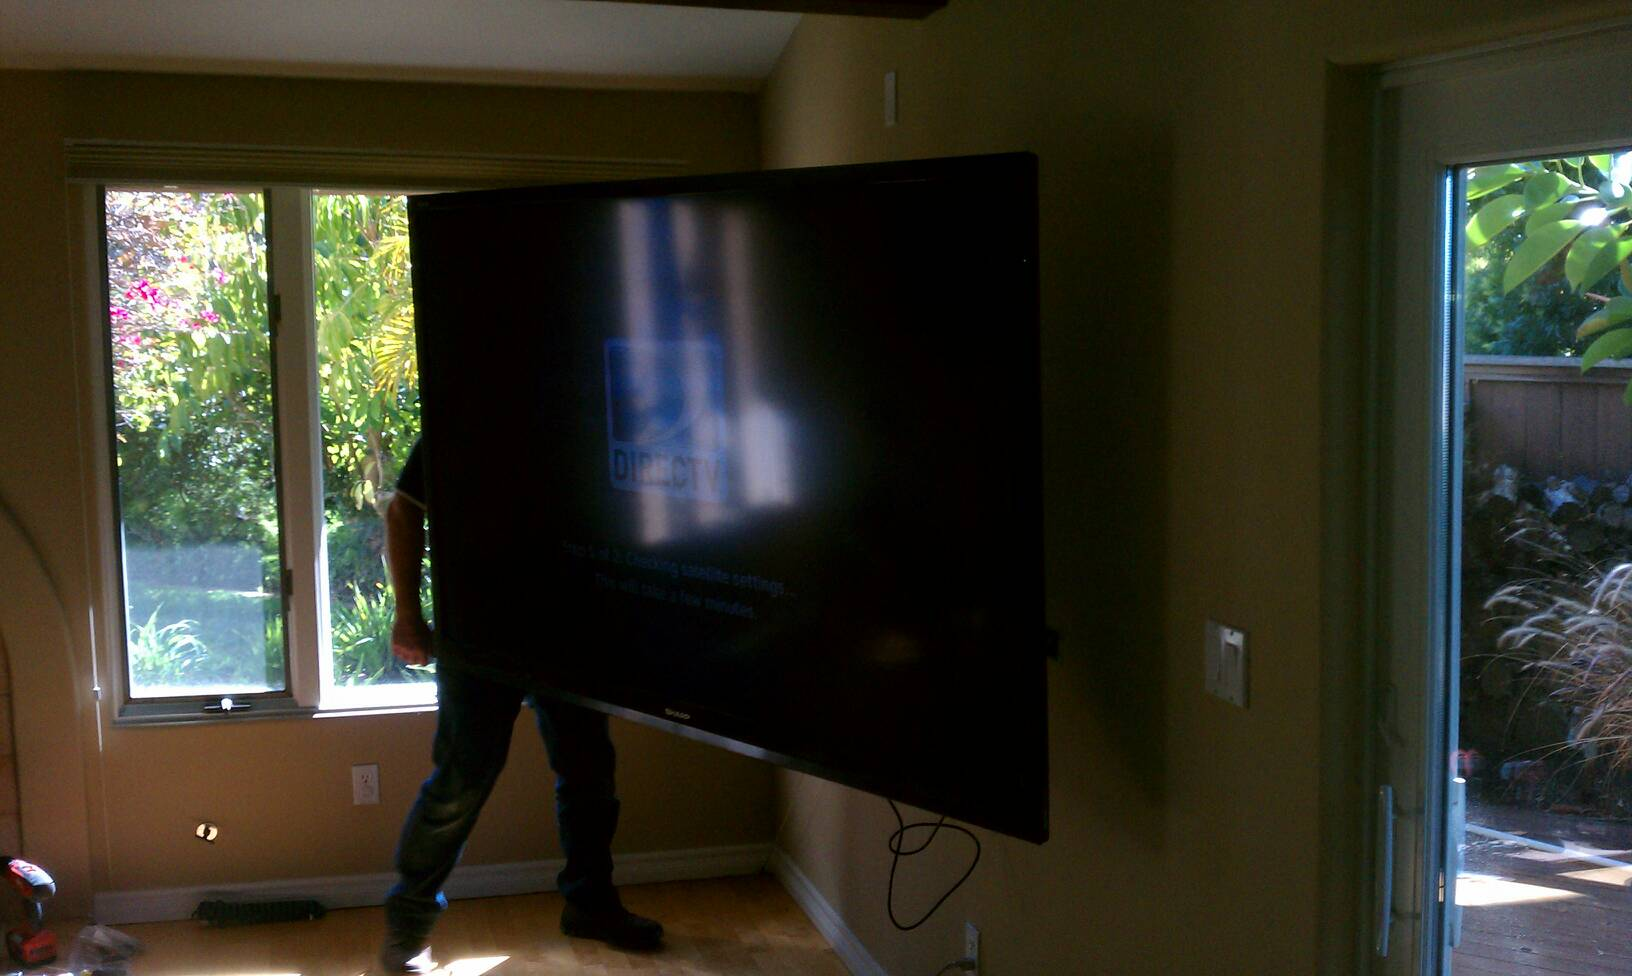 80 inch tv install today Calray Electric, Inc.: